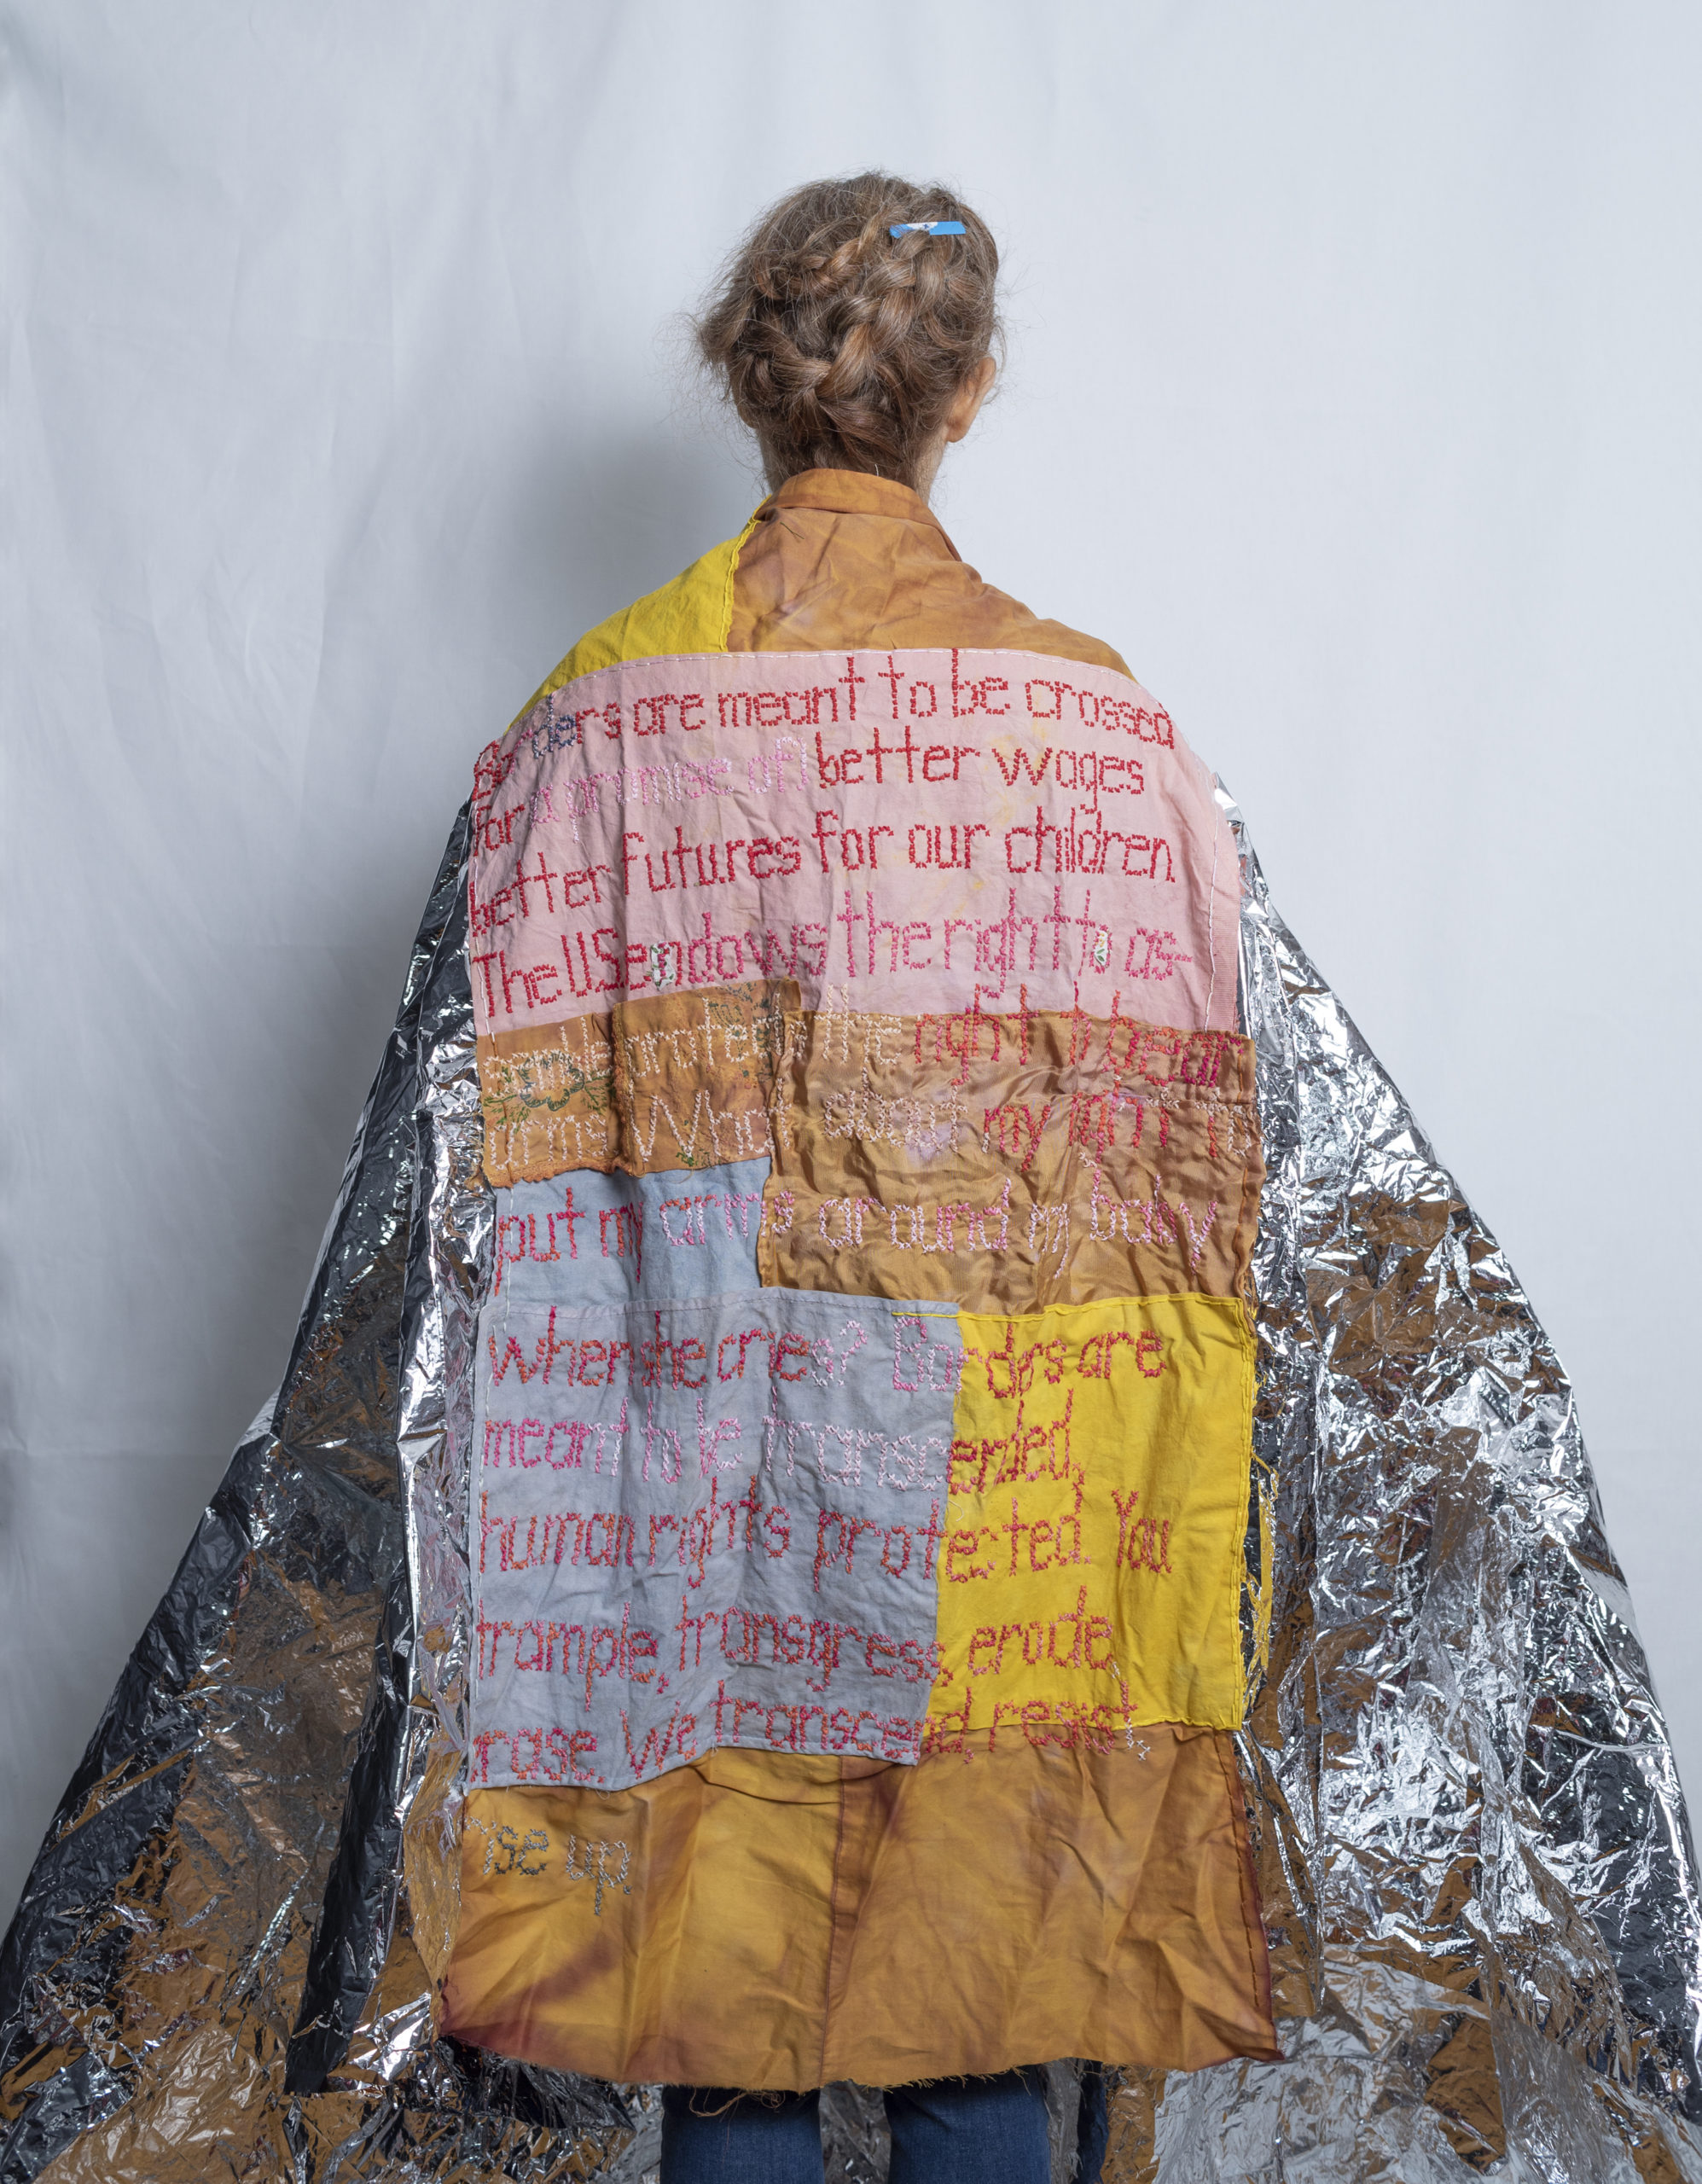 Image of a person draping a tapestry around their shoulders